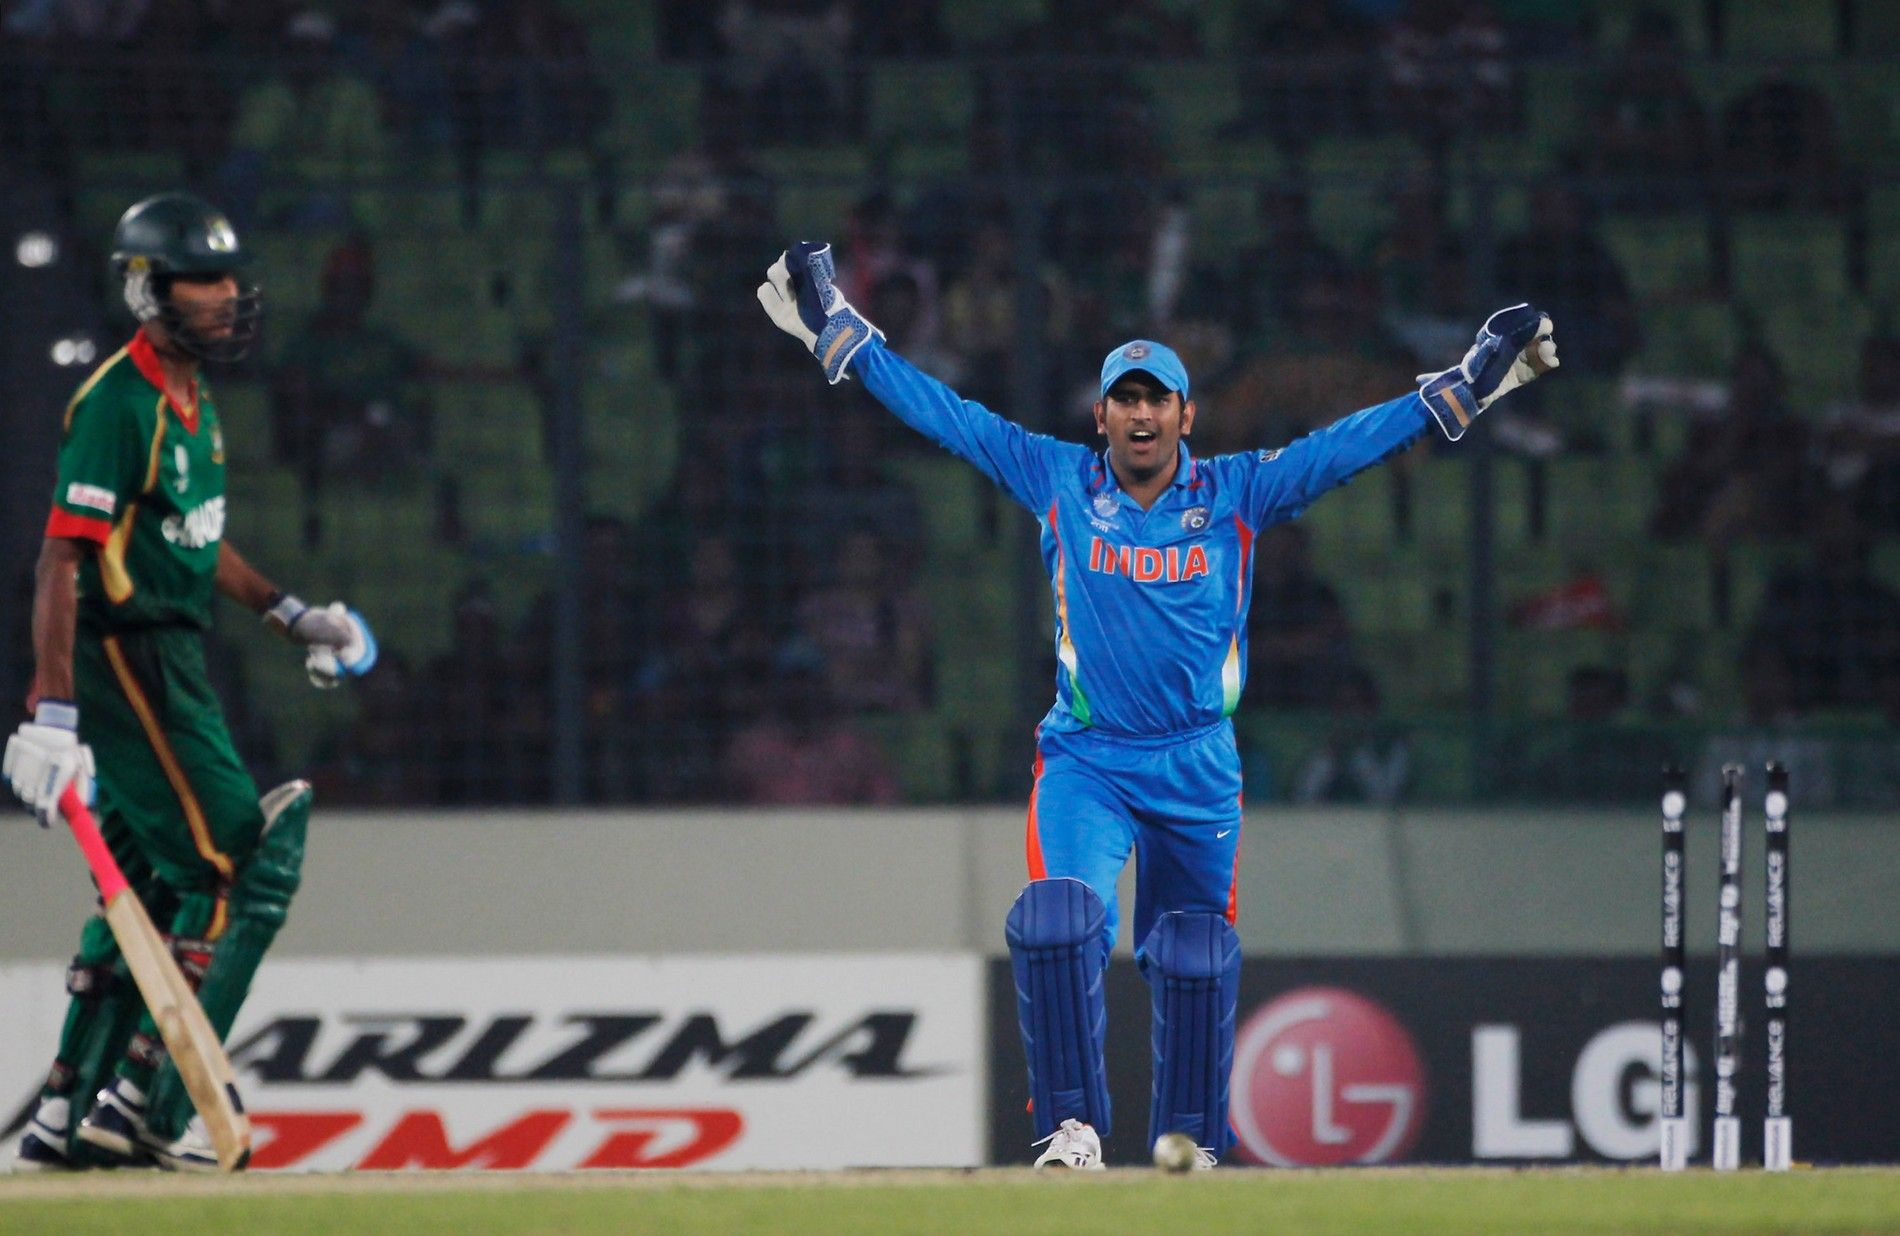 Dhoni 3d Wallpapers Top Free Dhoni 3d Backgrounds Wallpaperaccess